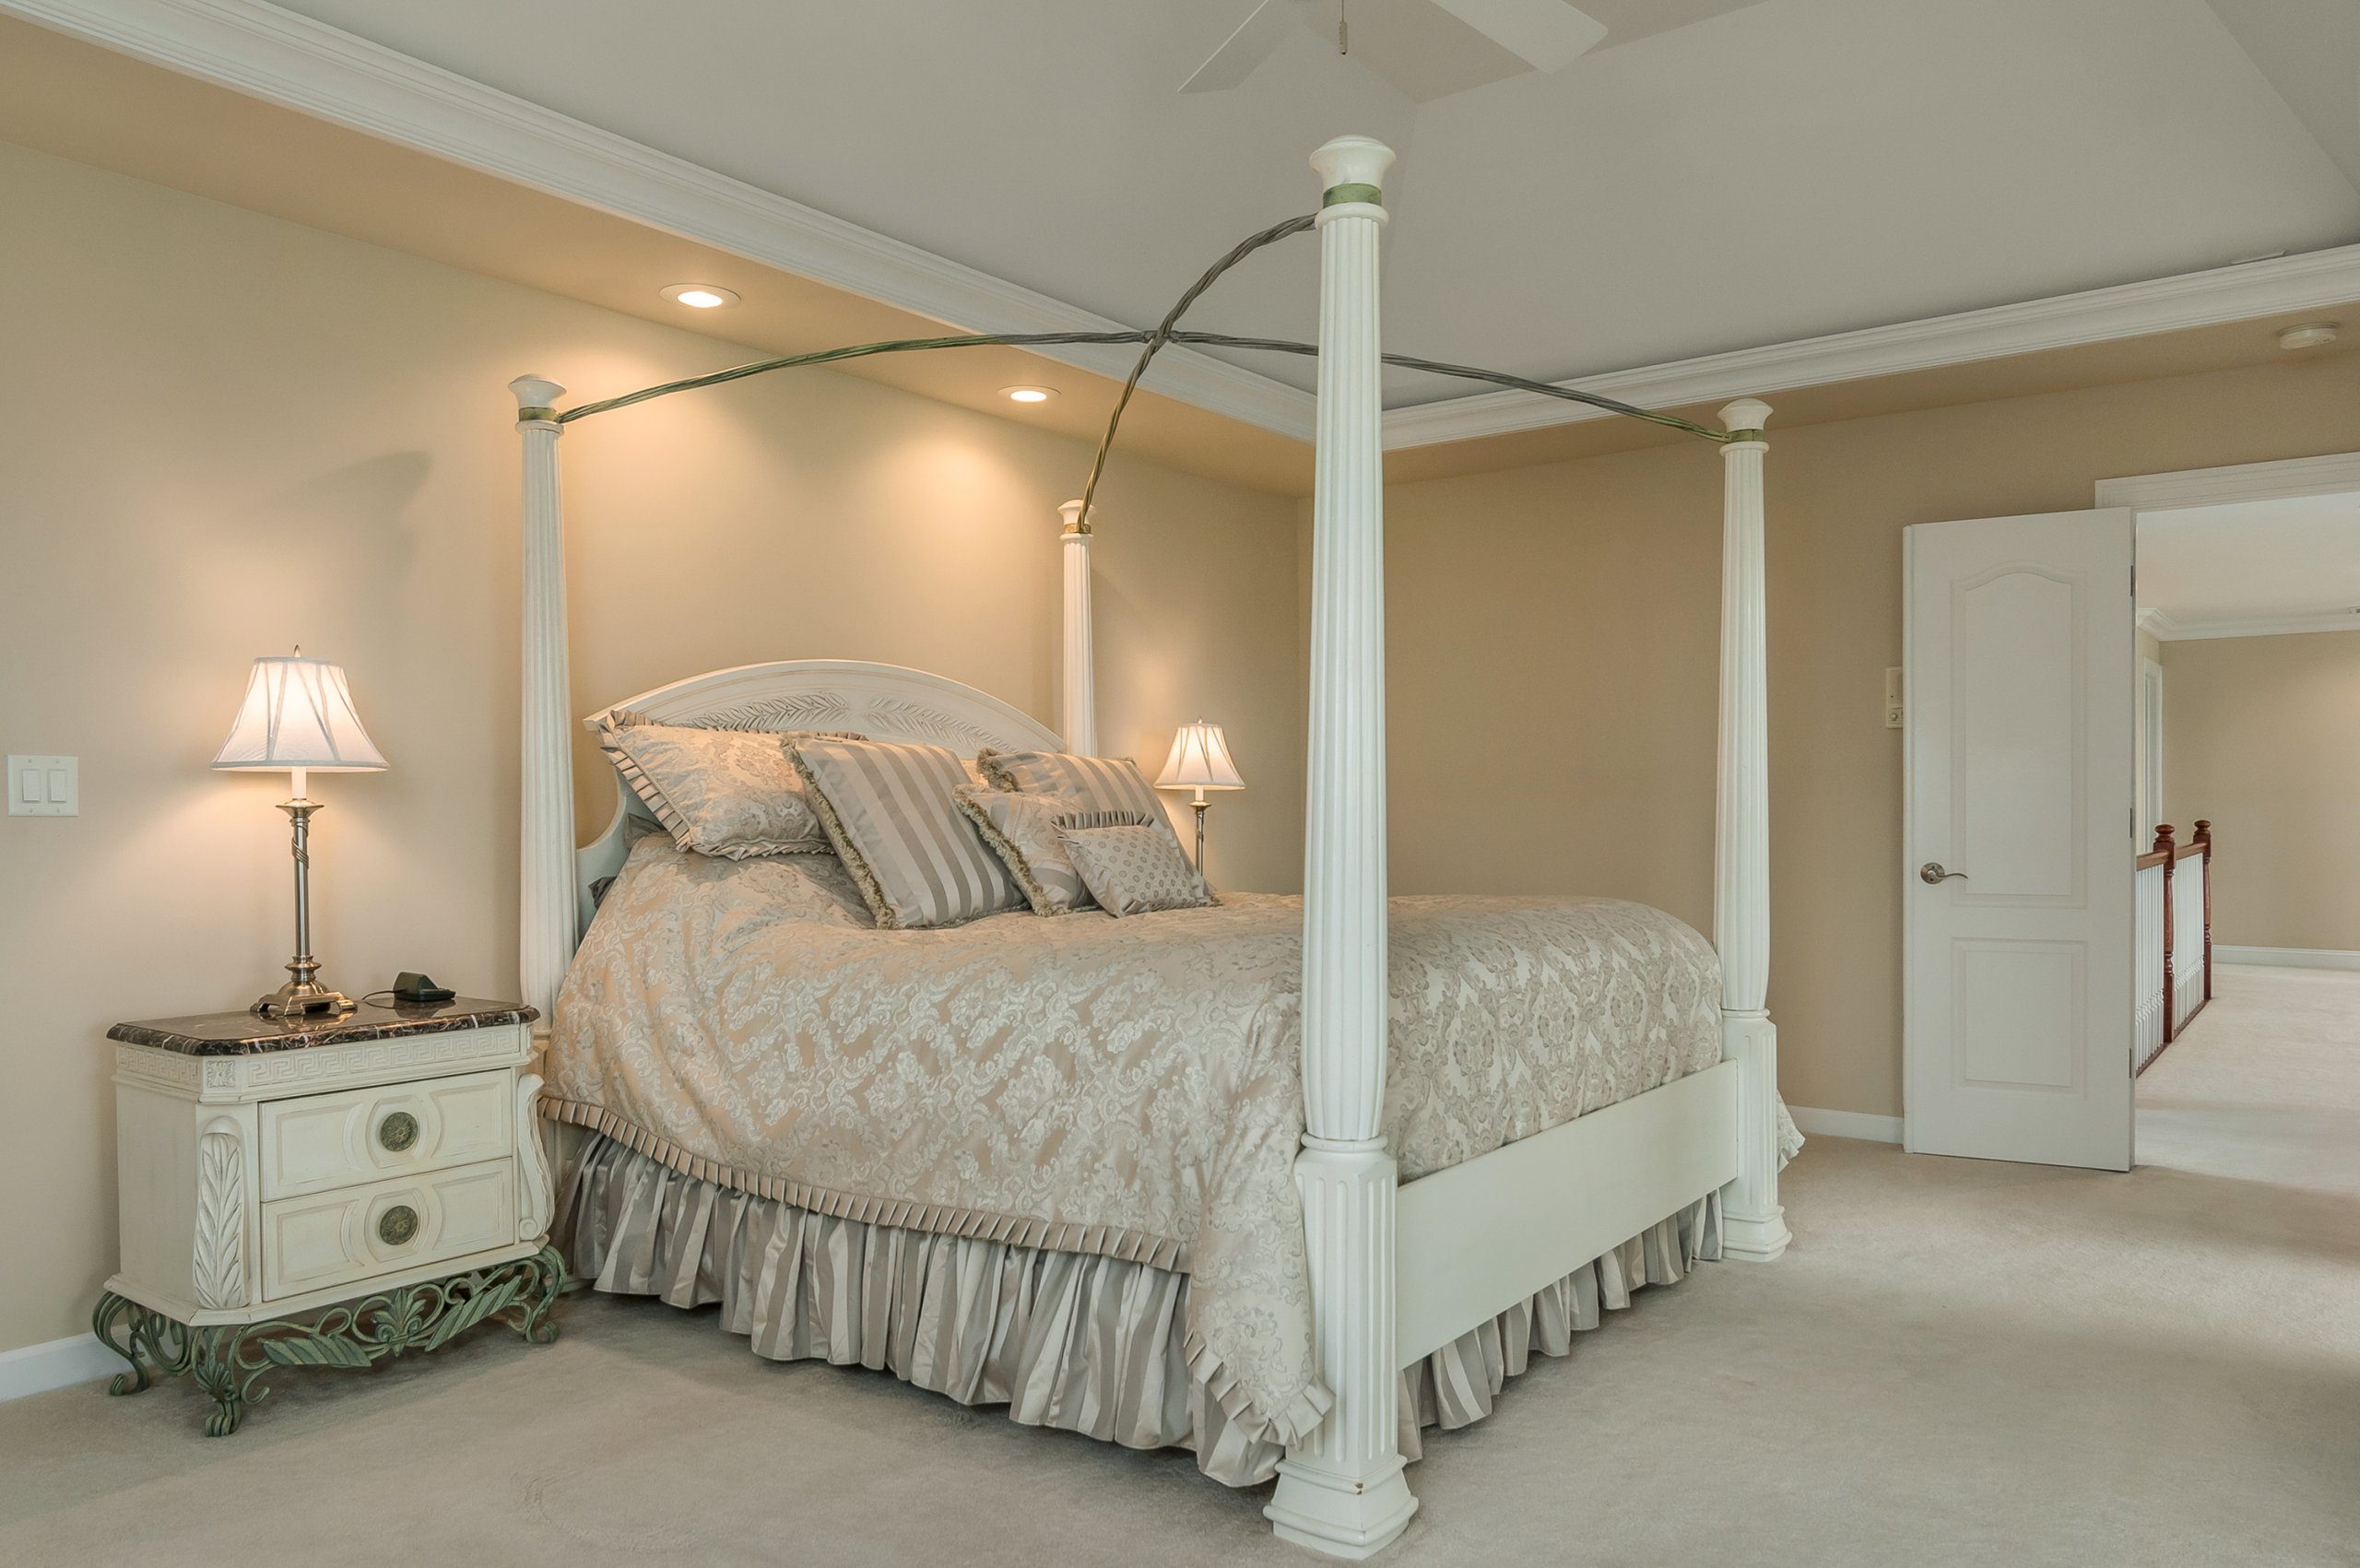 Off white themed luxury master bedroom in estate home in Somonauk, Ilinois.